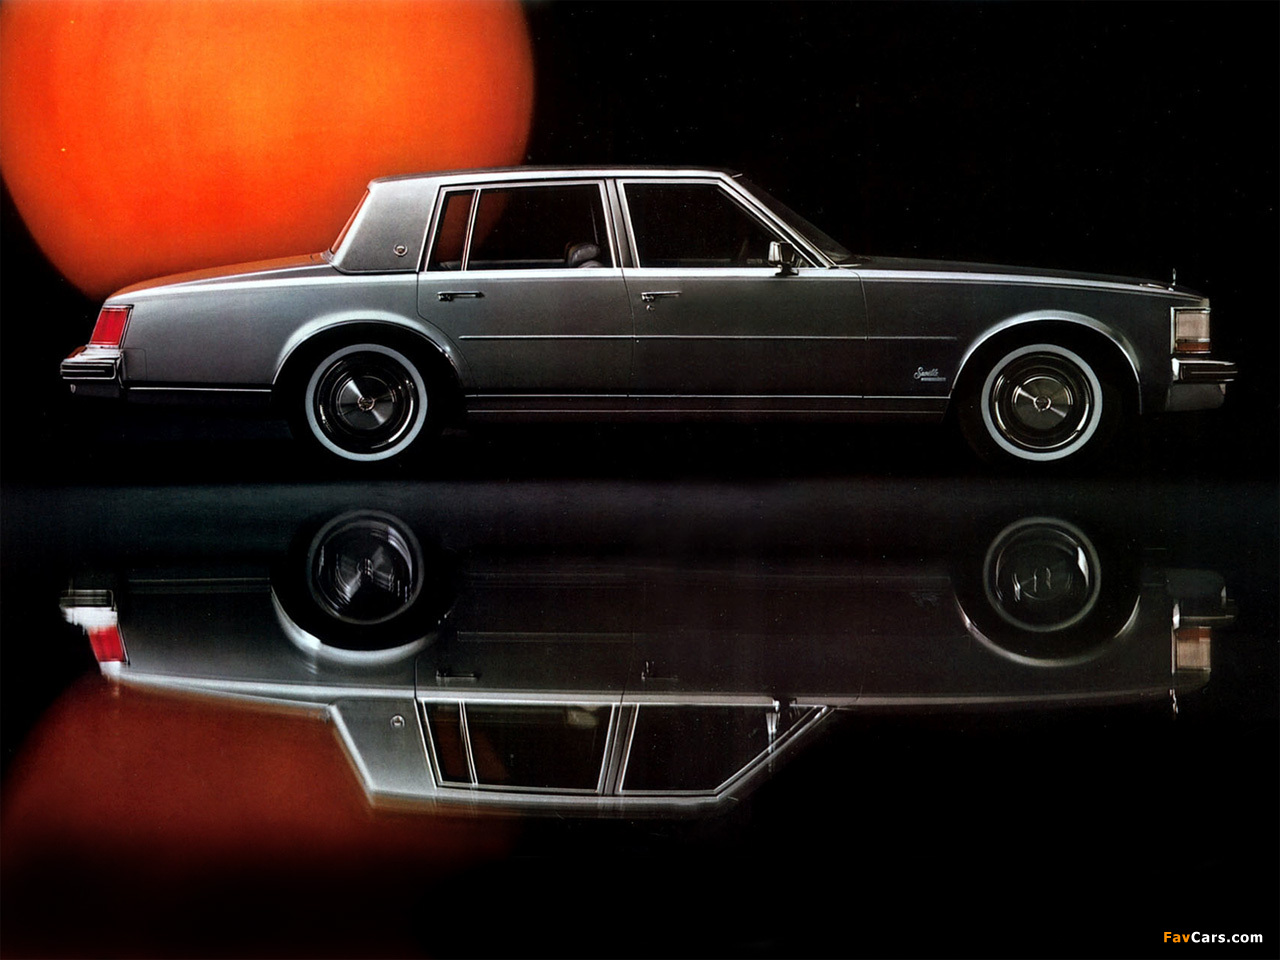 cadillac_seville_1975_photos_2.jpg